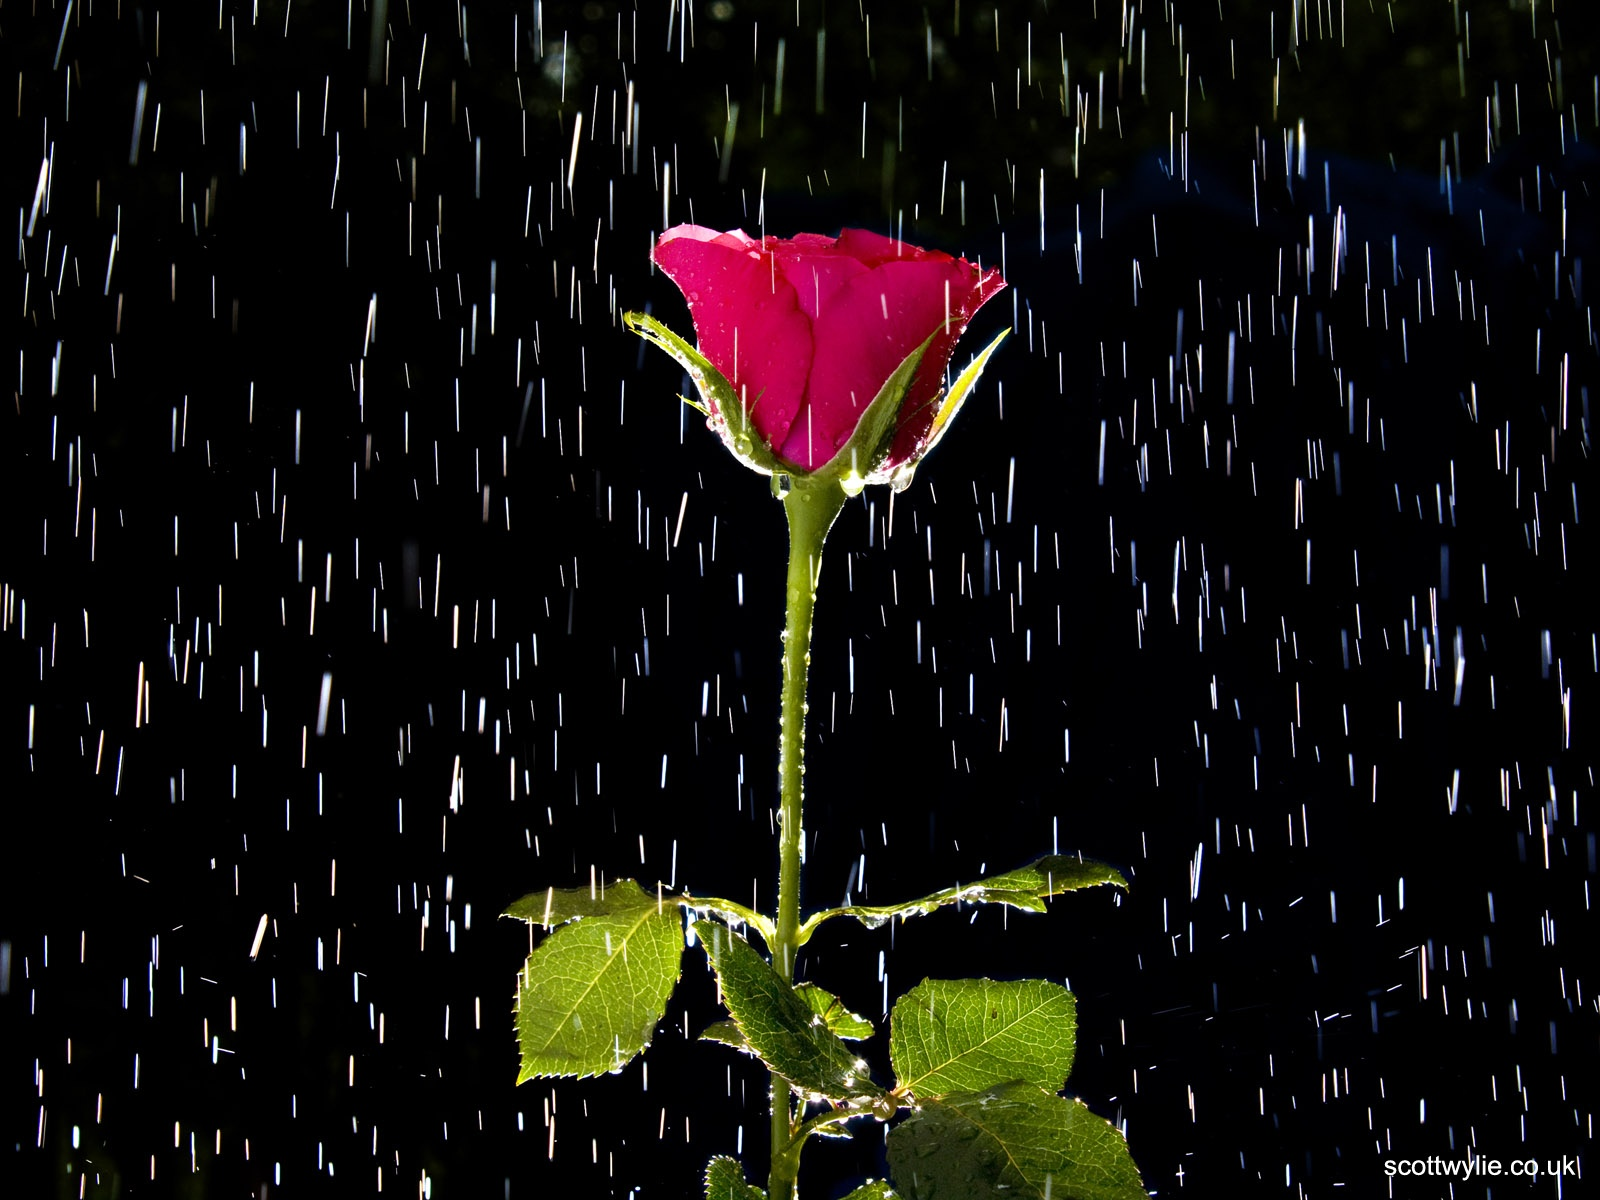 Rose and rain wallpapers rose and rain stock photos rose and rain wallpapers and stock photos voltagebd Image collections